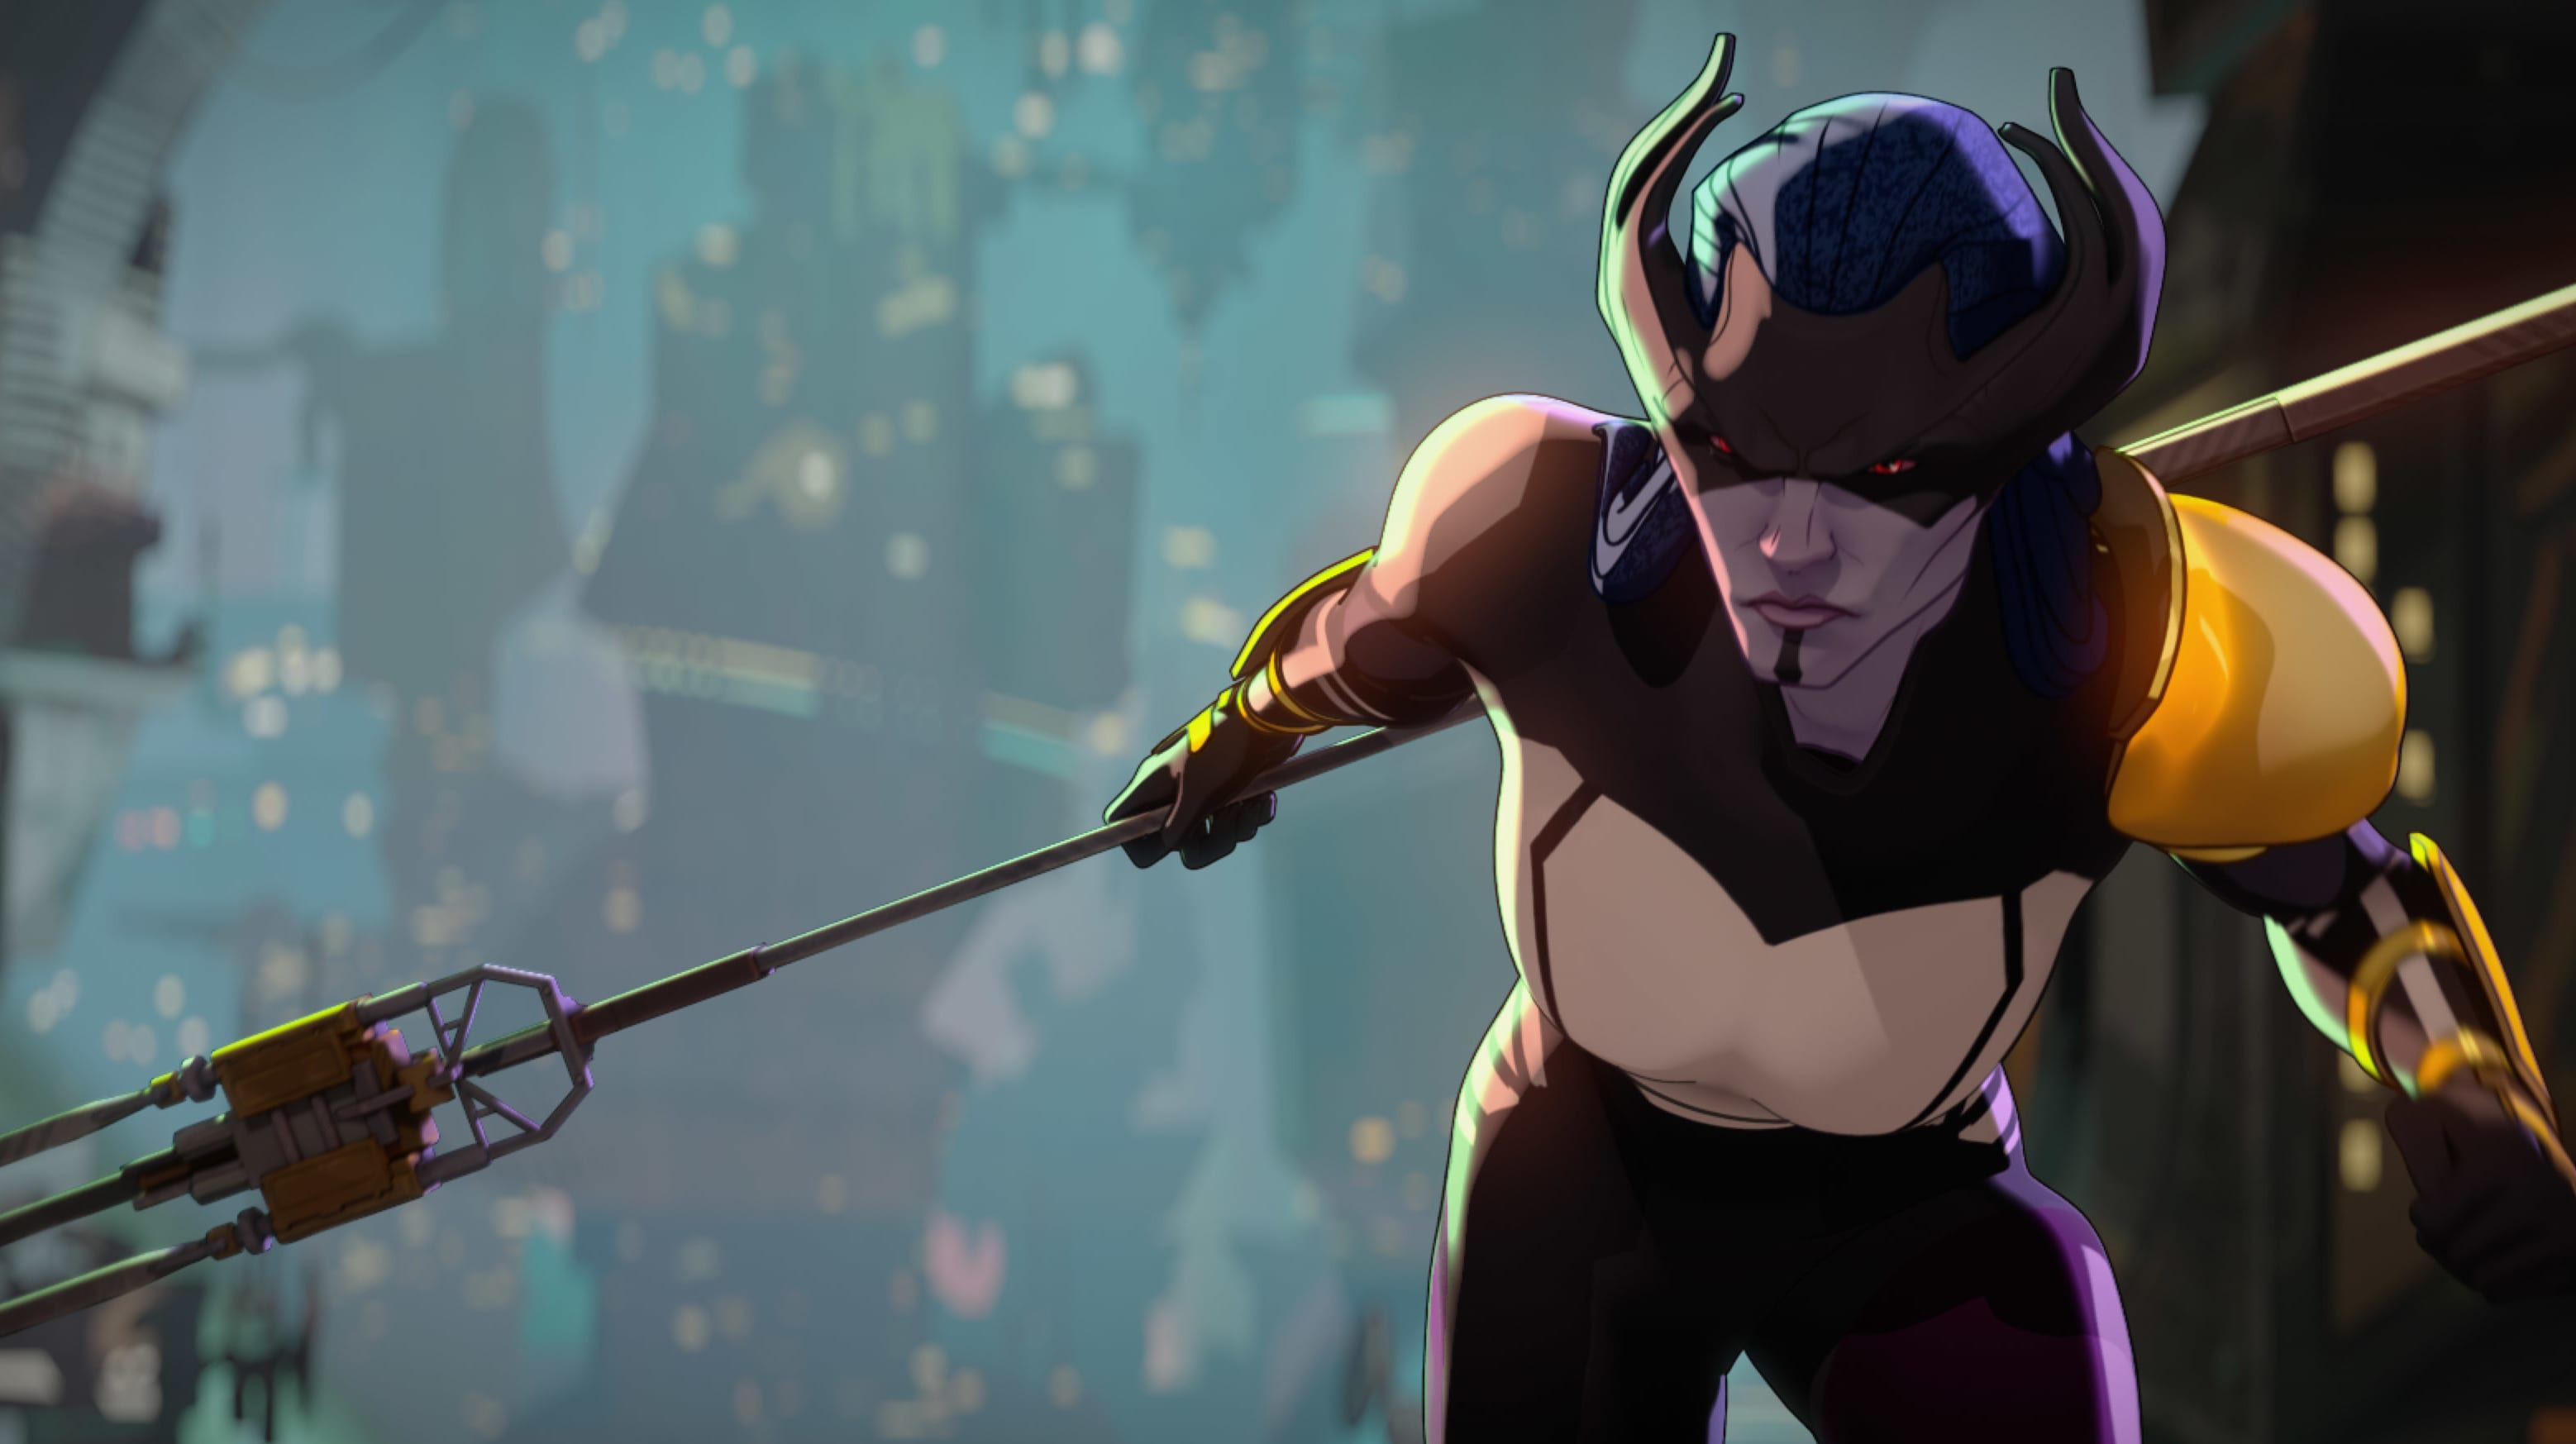 Proxima Midnight  in Marvel Studios' WHAT IF…? exclusively on Disney+. ©Marvel Studios 2021. All Rights Reserved.